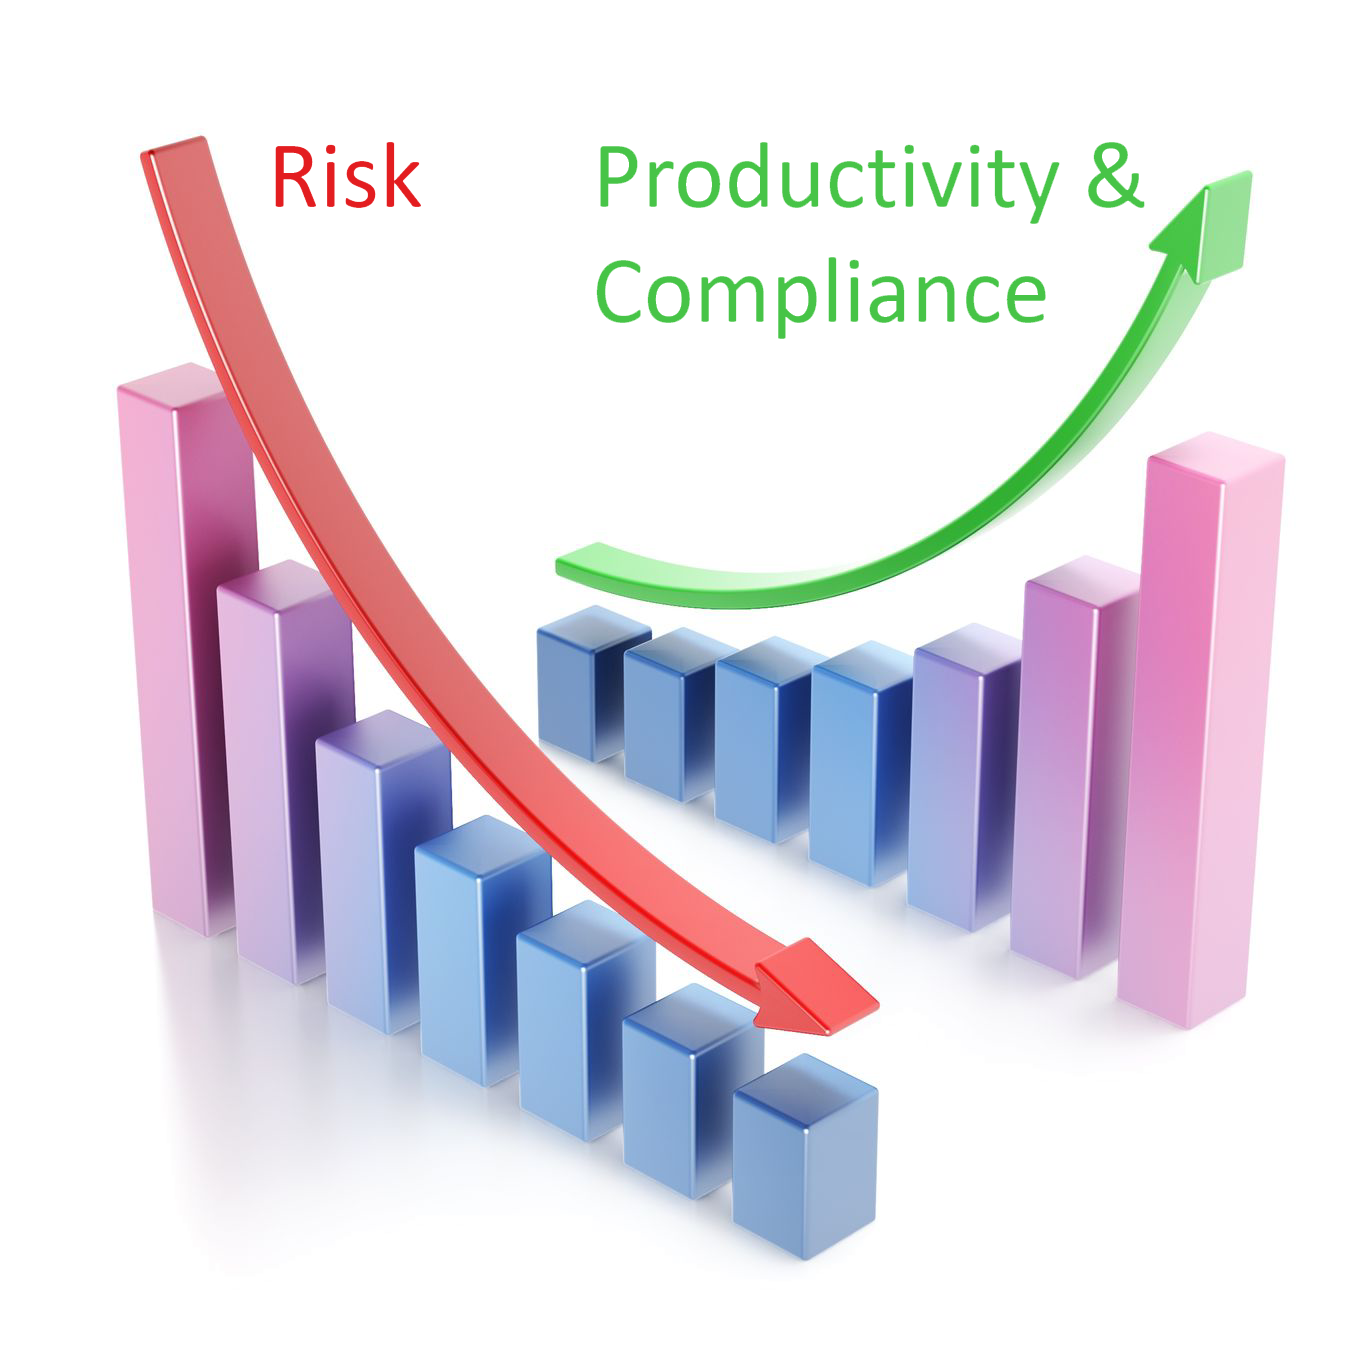 Proactive products reduce risks and increase productivity and facility compliance - americanFLS.com